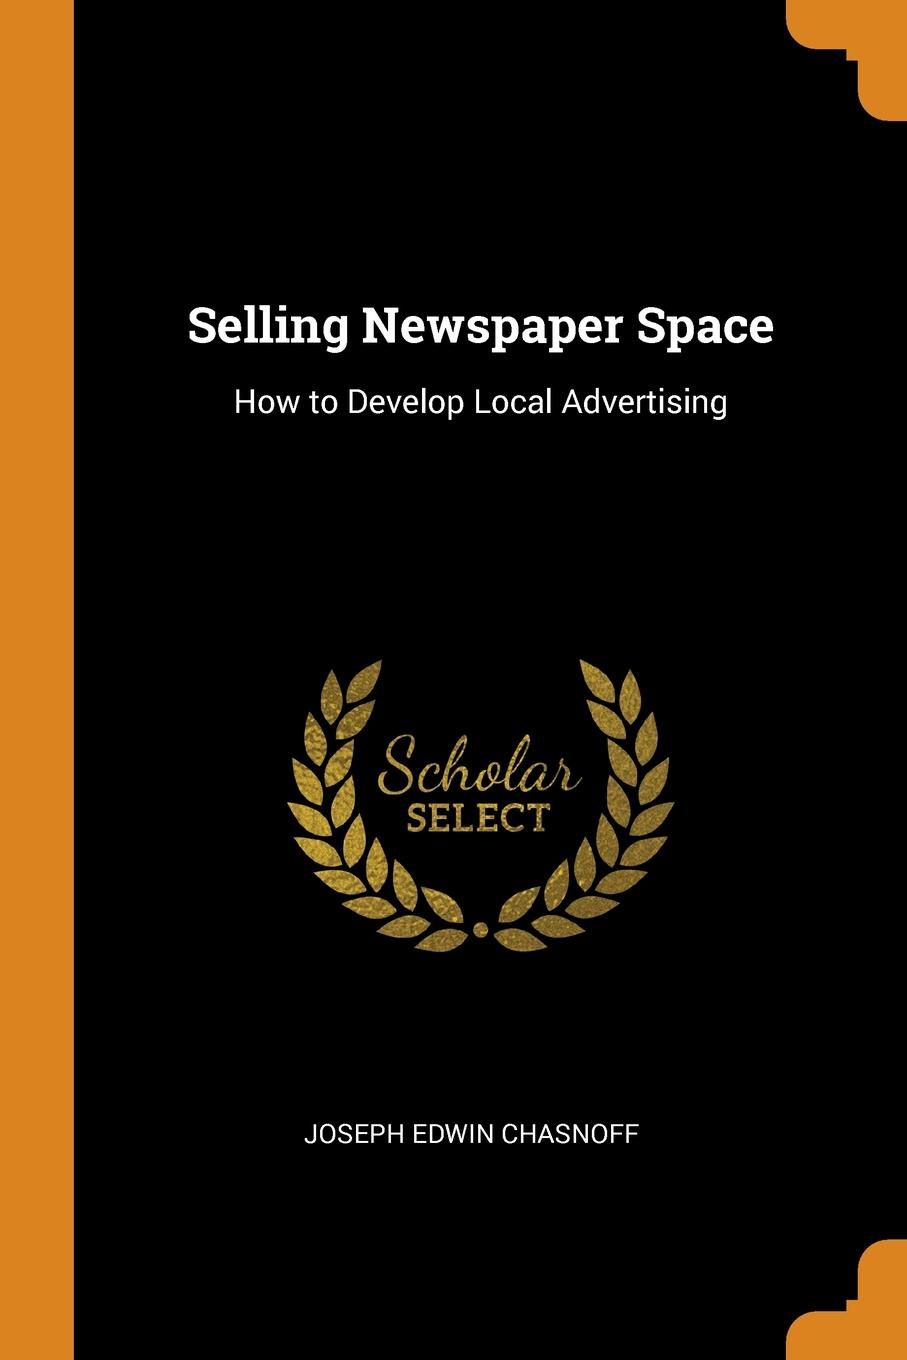 Selling Newspaper Space. How to Develop Local Advertising